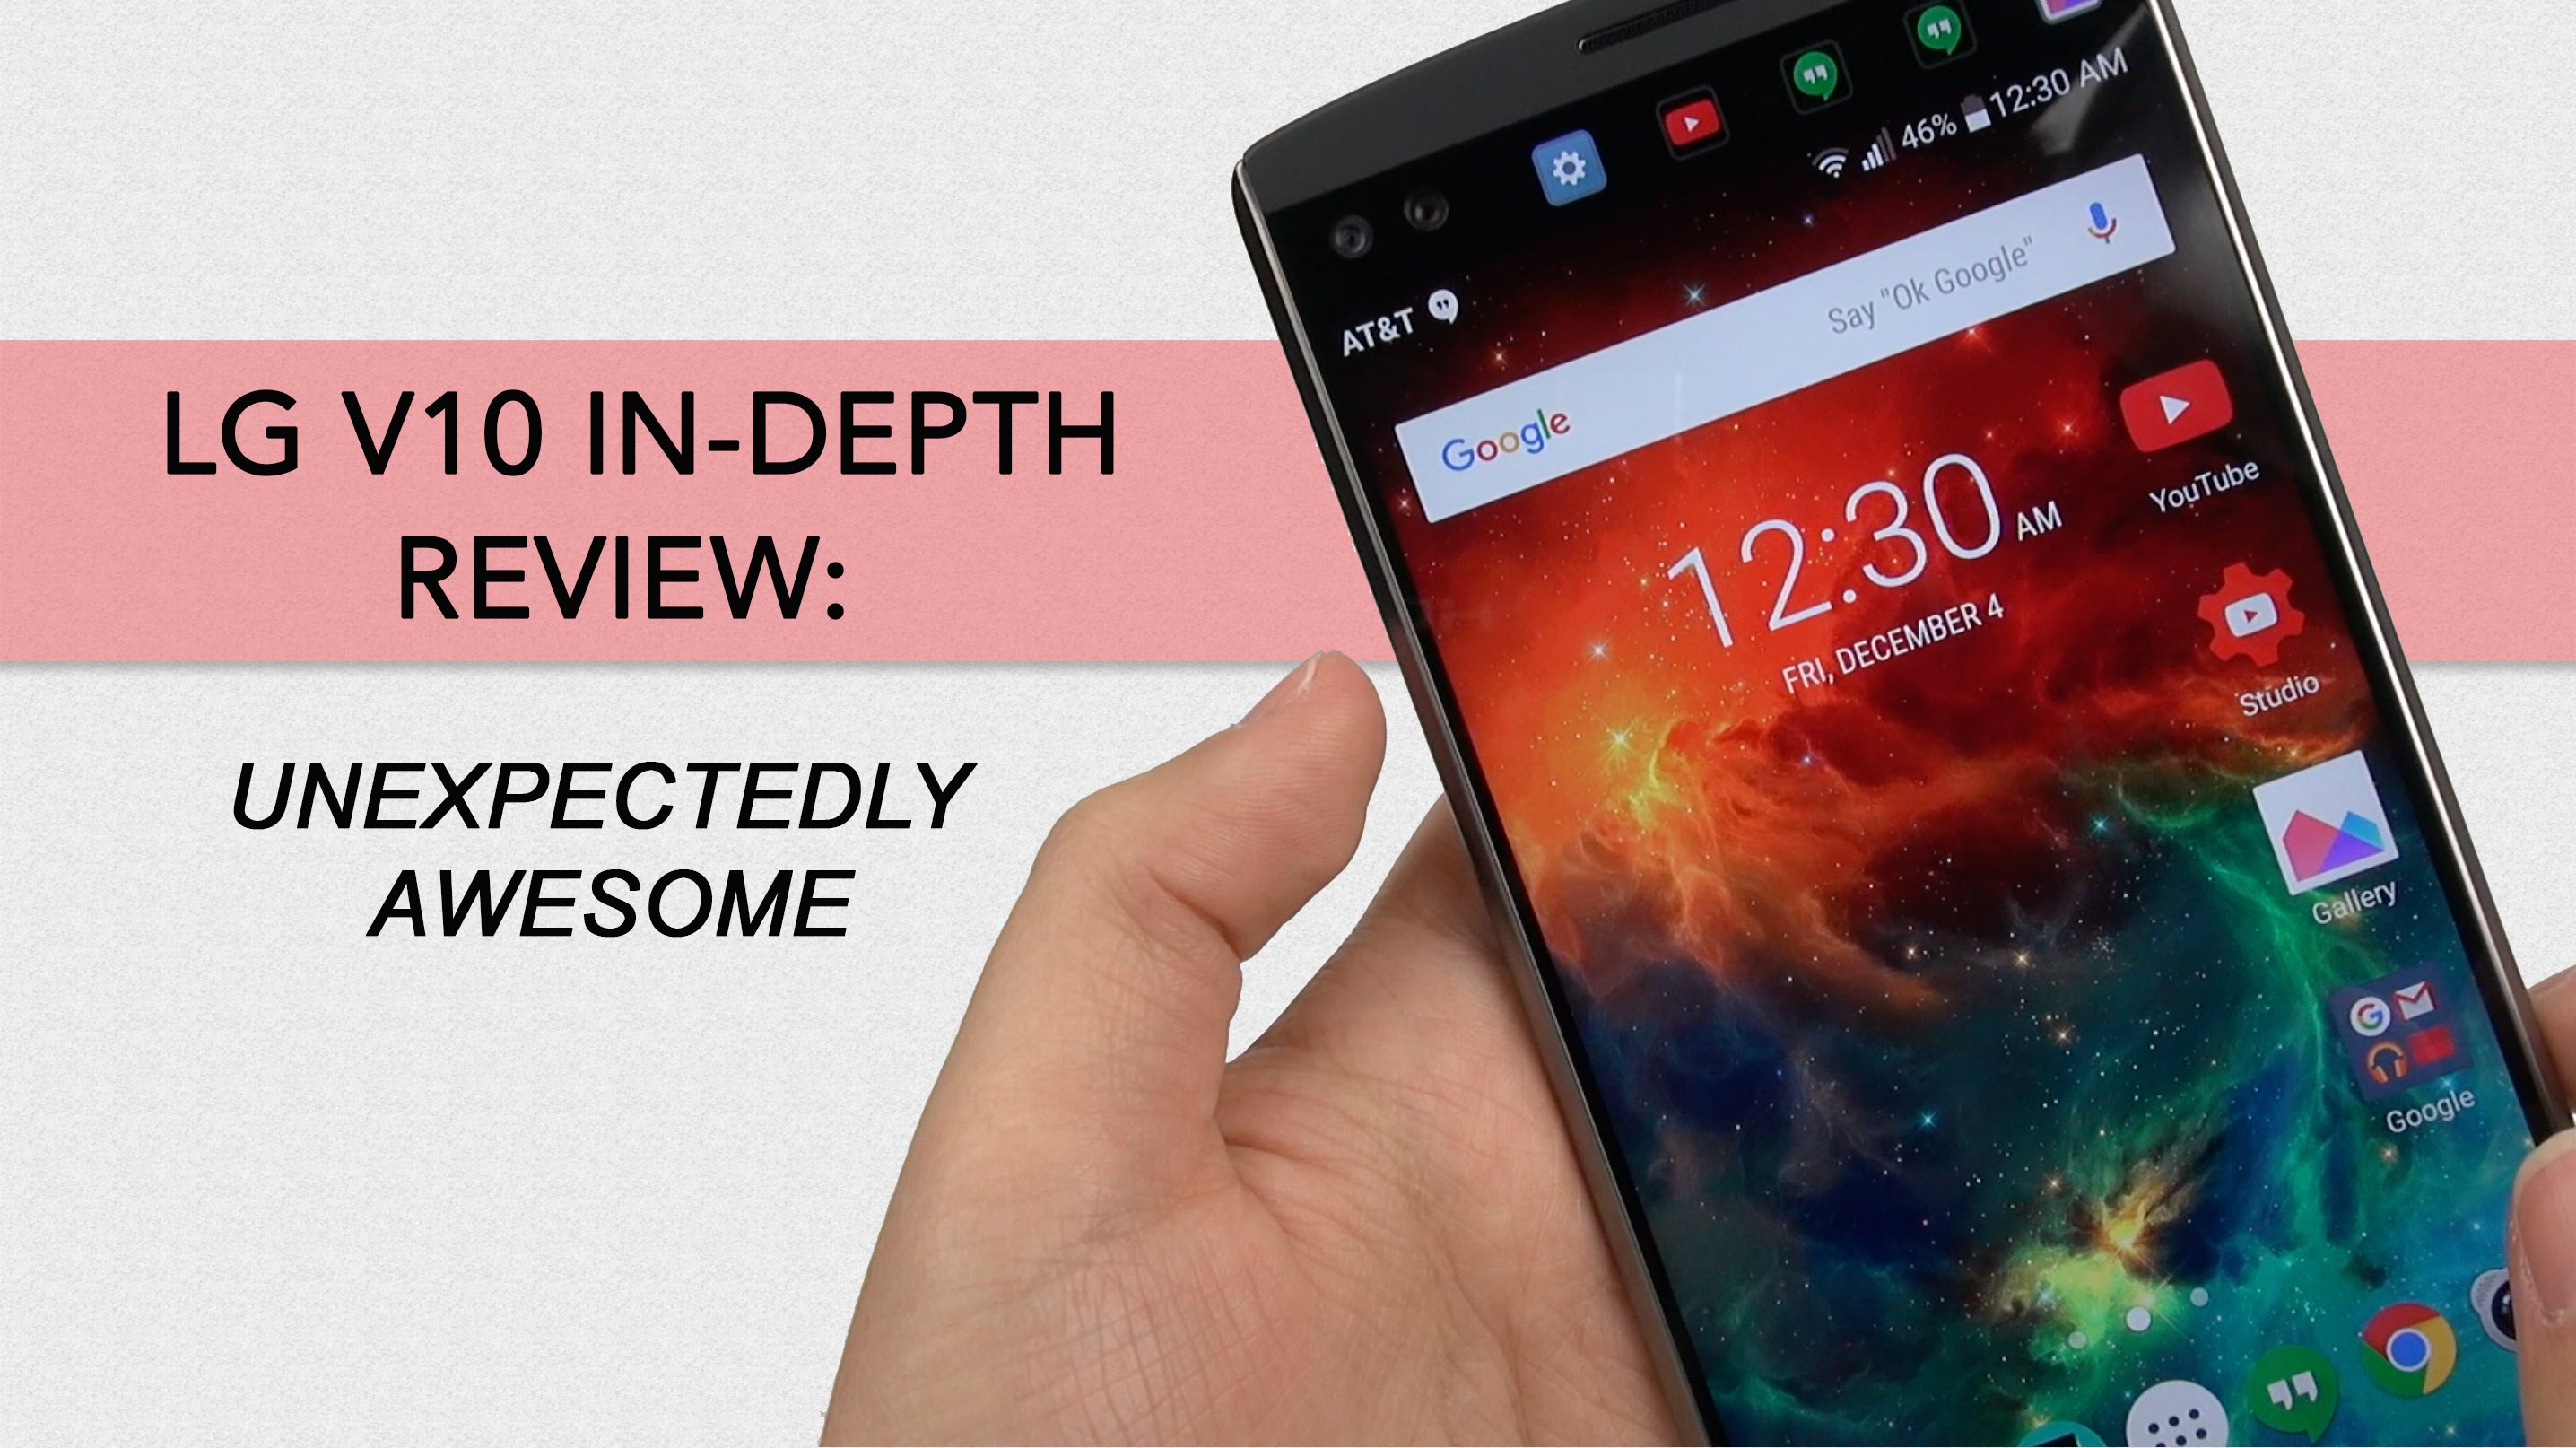 LG V10 In-Depth Review: A Device Well Worth It